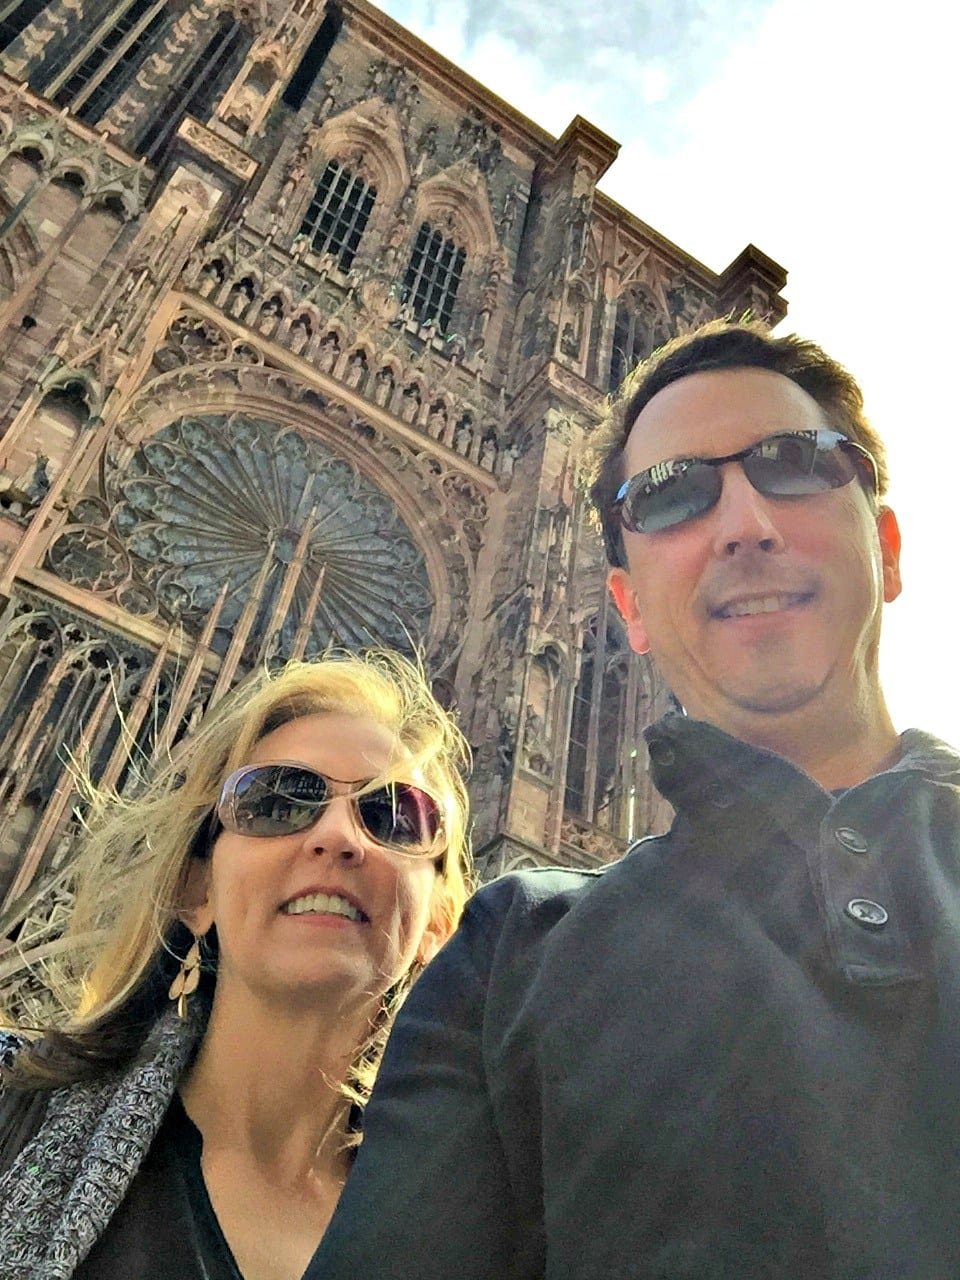 Standing in front of Cathédrale de Notre Dame of Strasbourg, the highest medieval building in Europe